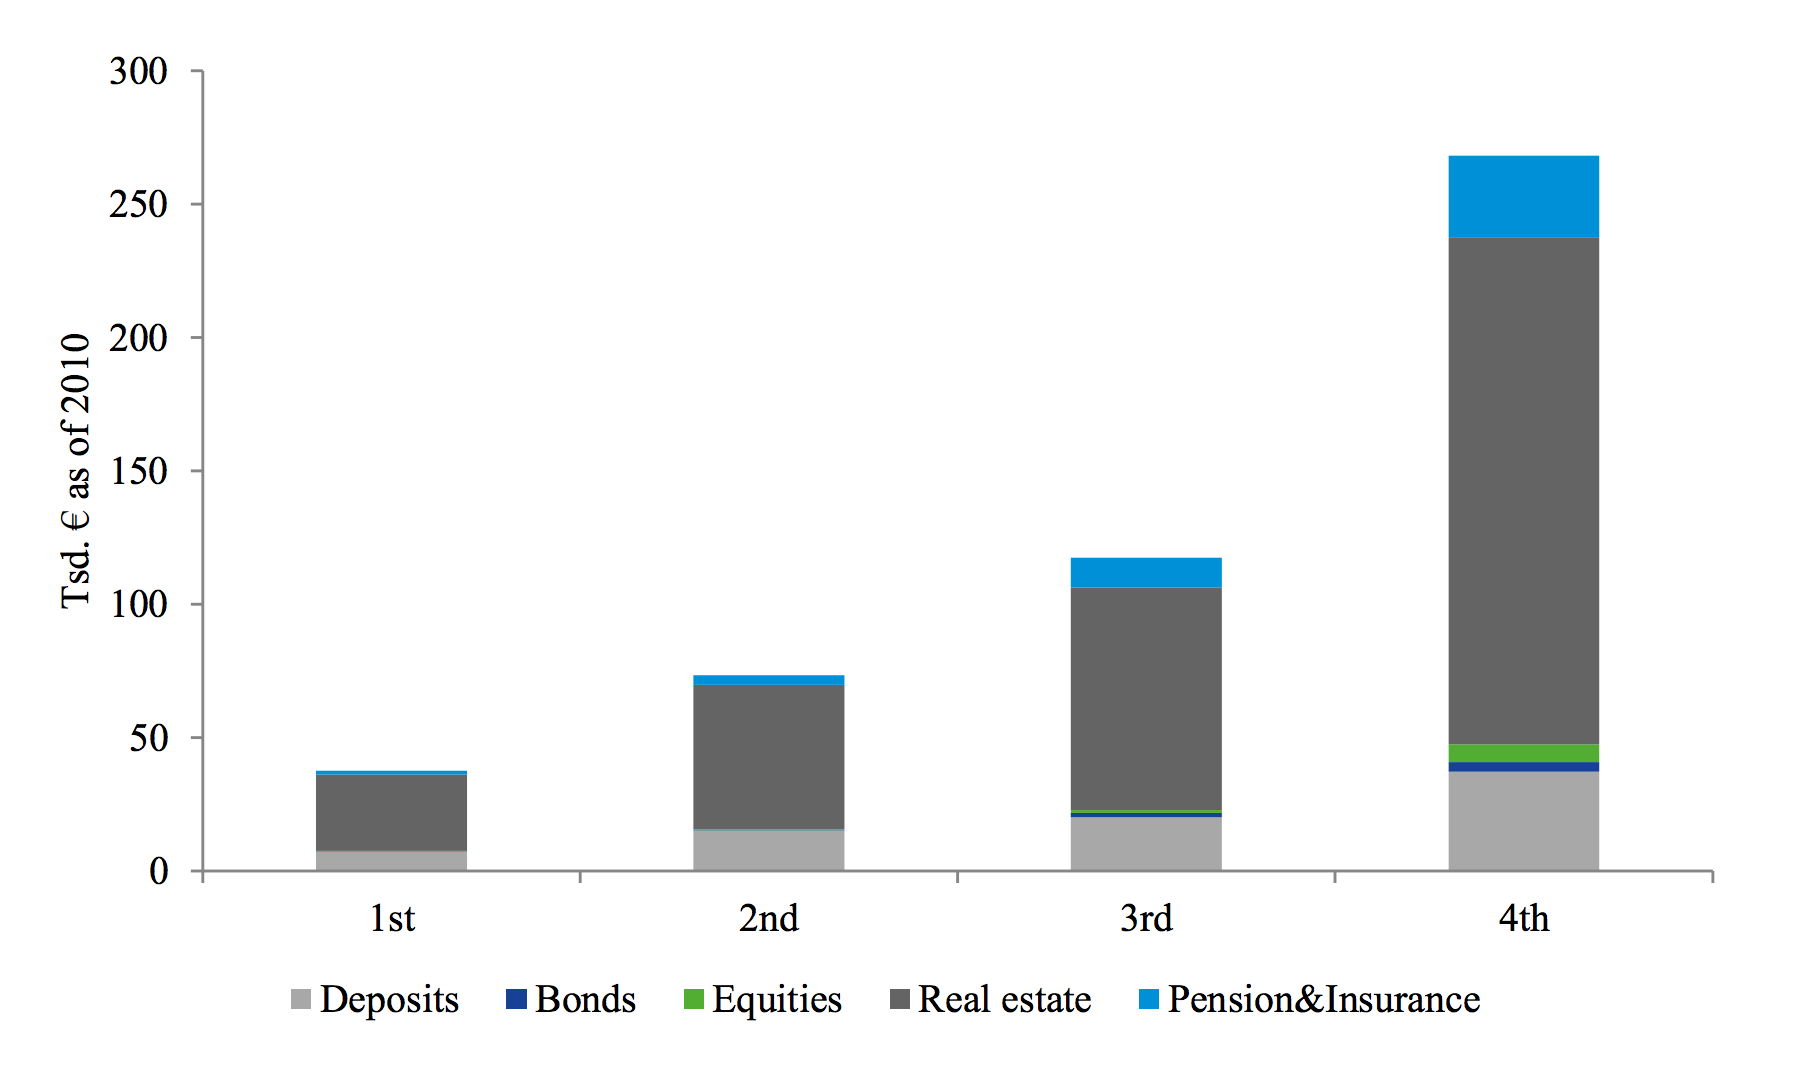 Figure 2: Households' asset holding in absolute terms